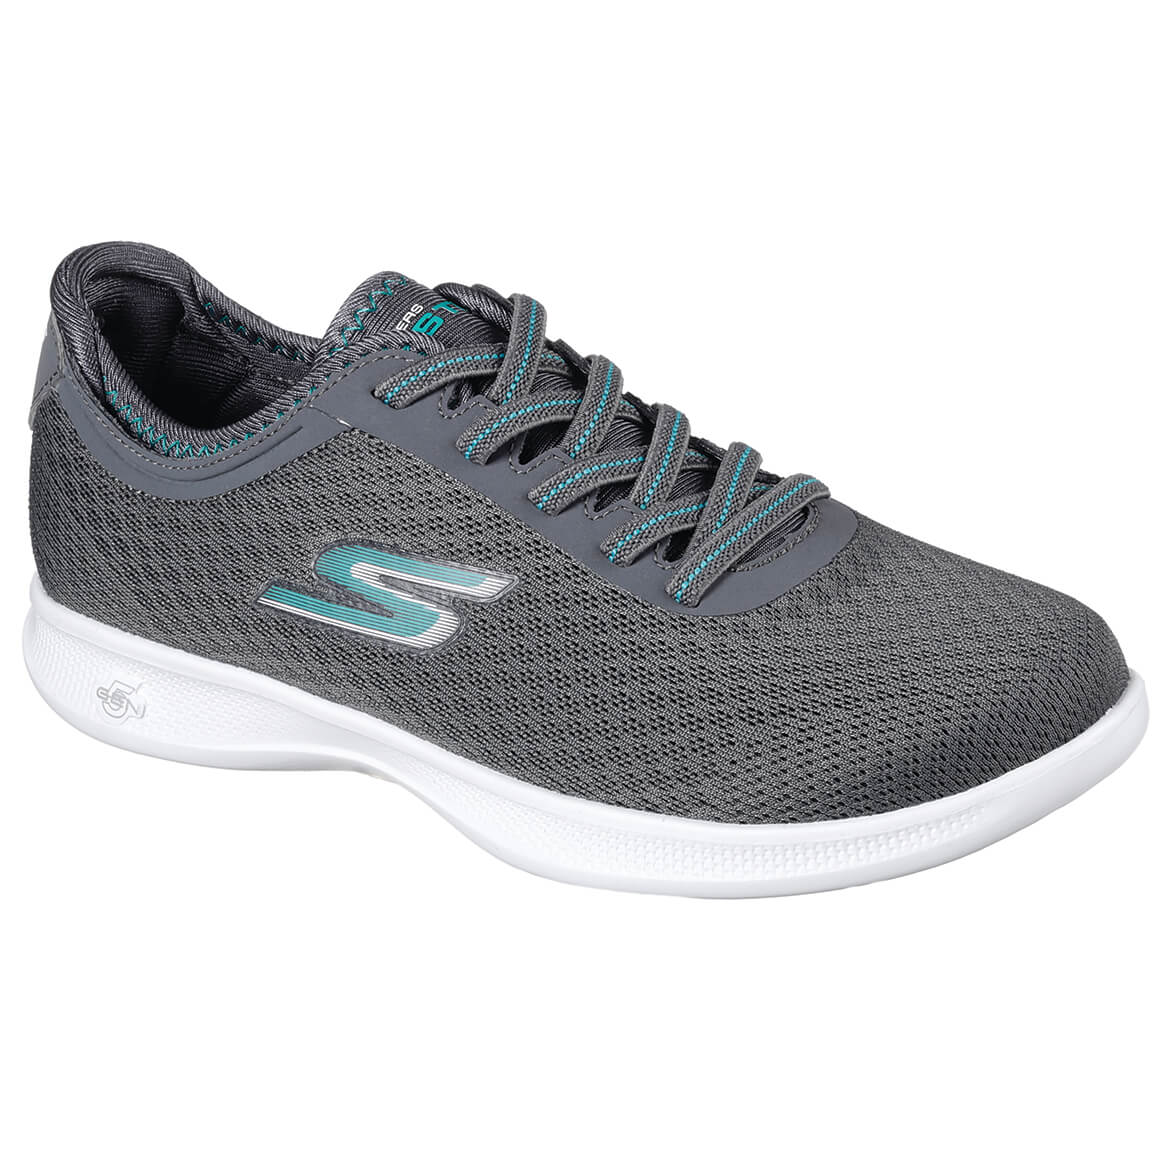 Skechers GO STEP Lite - Dashing